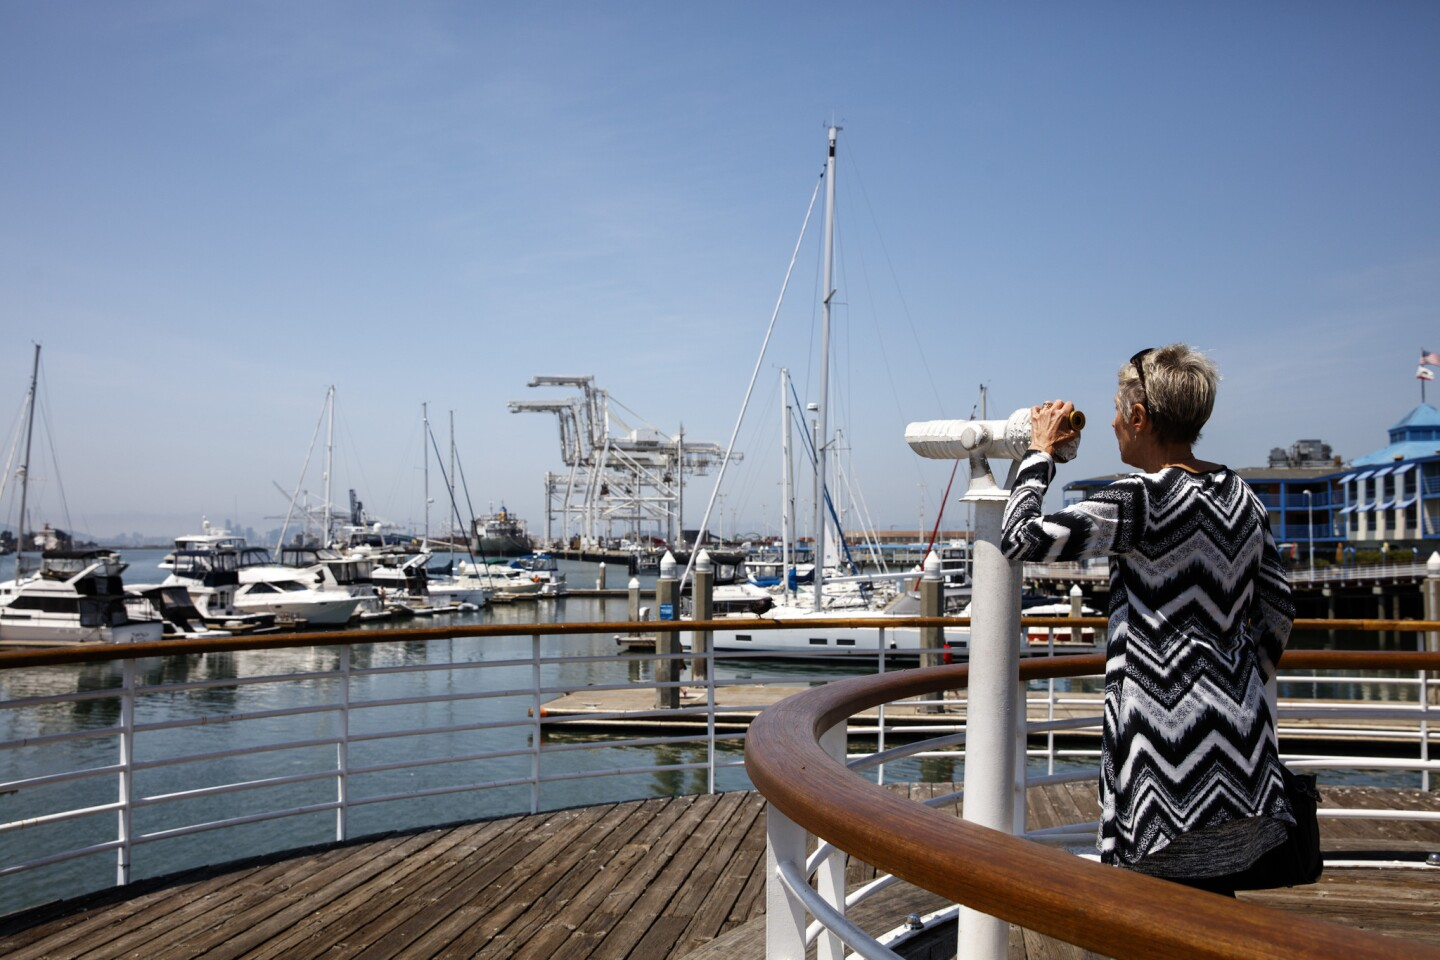 The waterfront, at Jack London Square, in Oakland, Calif.